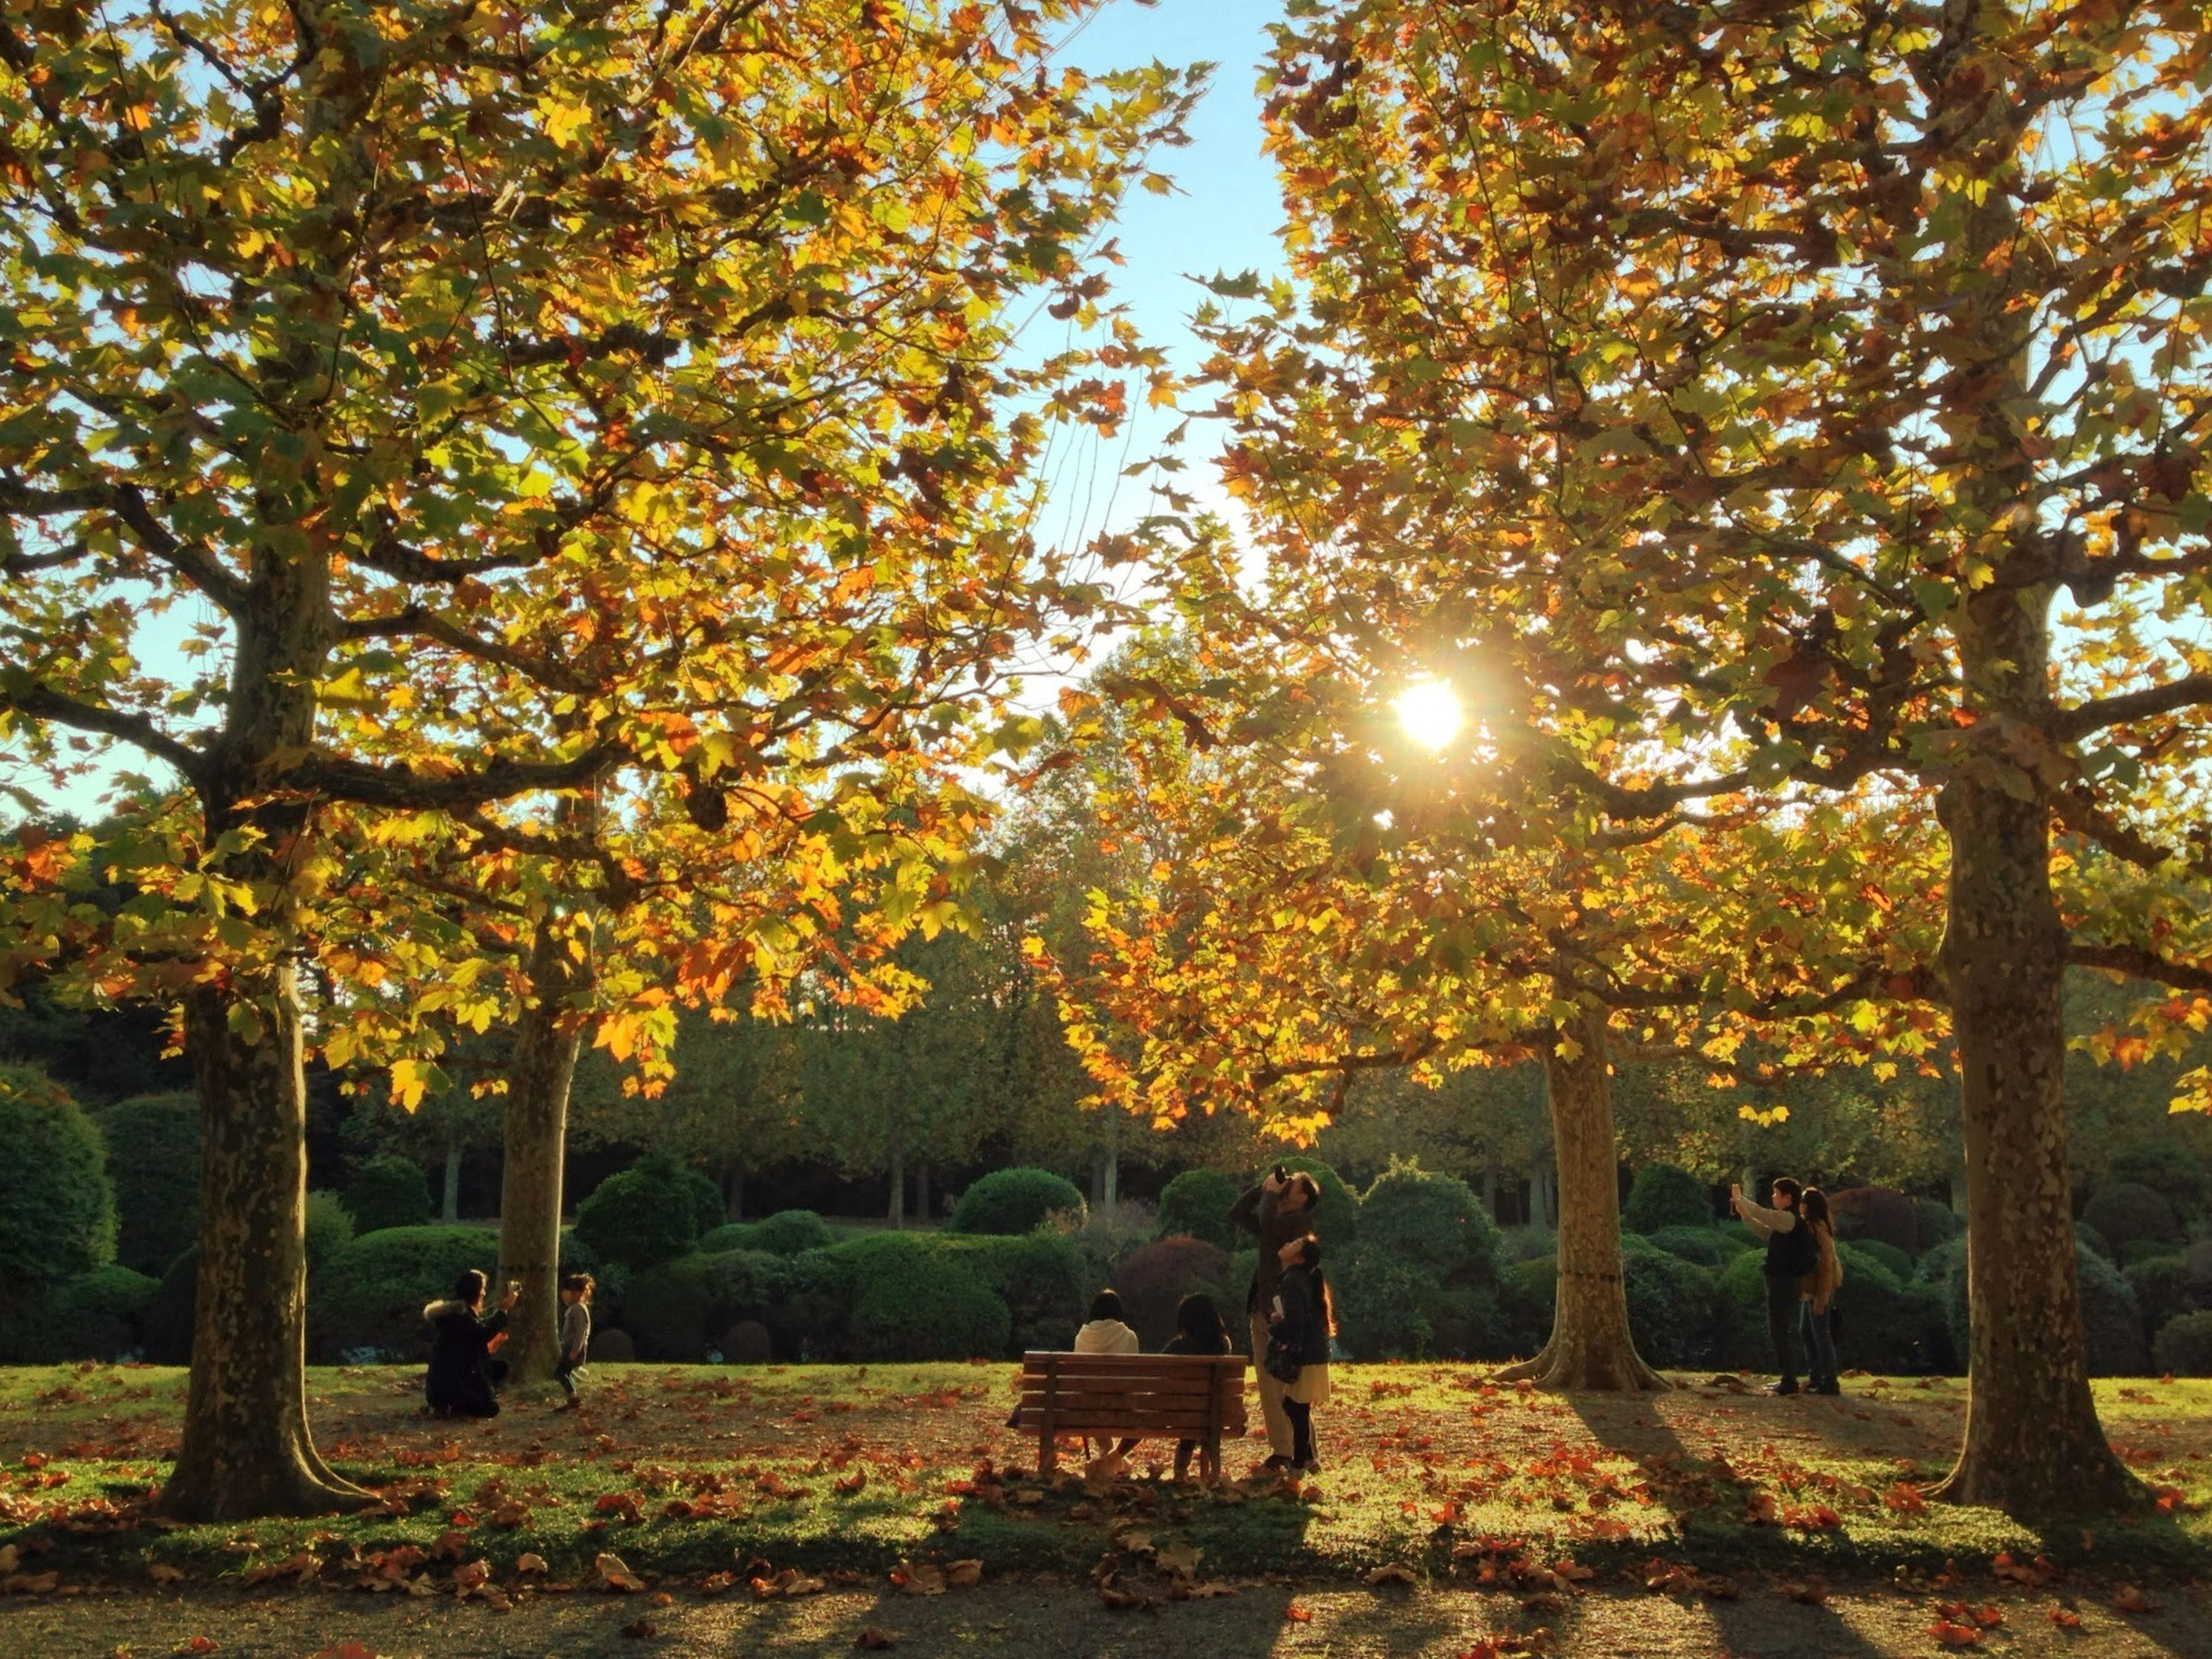 tree, autumn, growth, park - man made space, beauty in nature, nature, tranquility, sunlight, season, branch, change, orange color, scenics, tranquil scene, park, bench, yellow, sunset, outdoors, sun